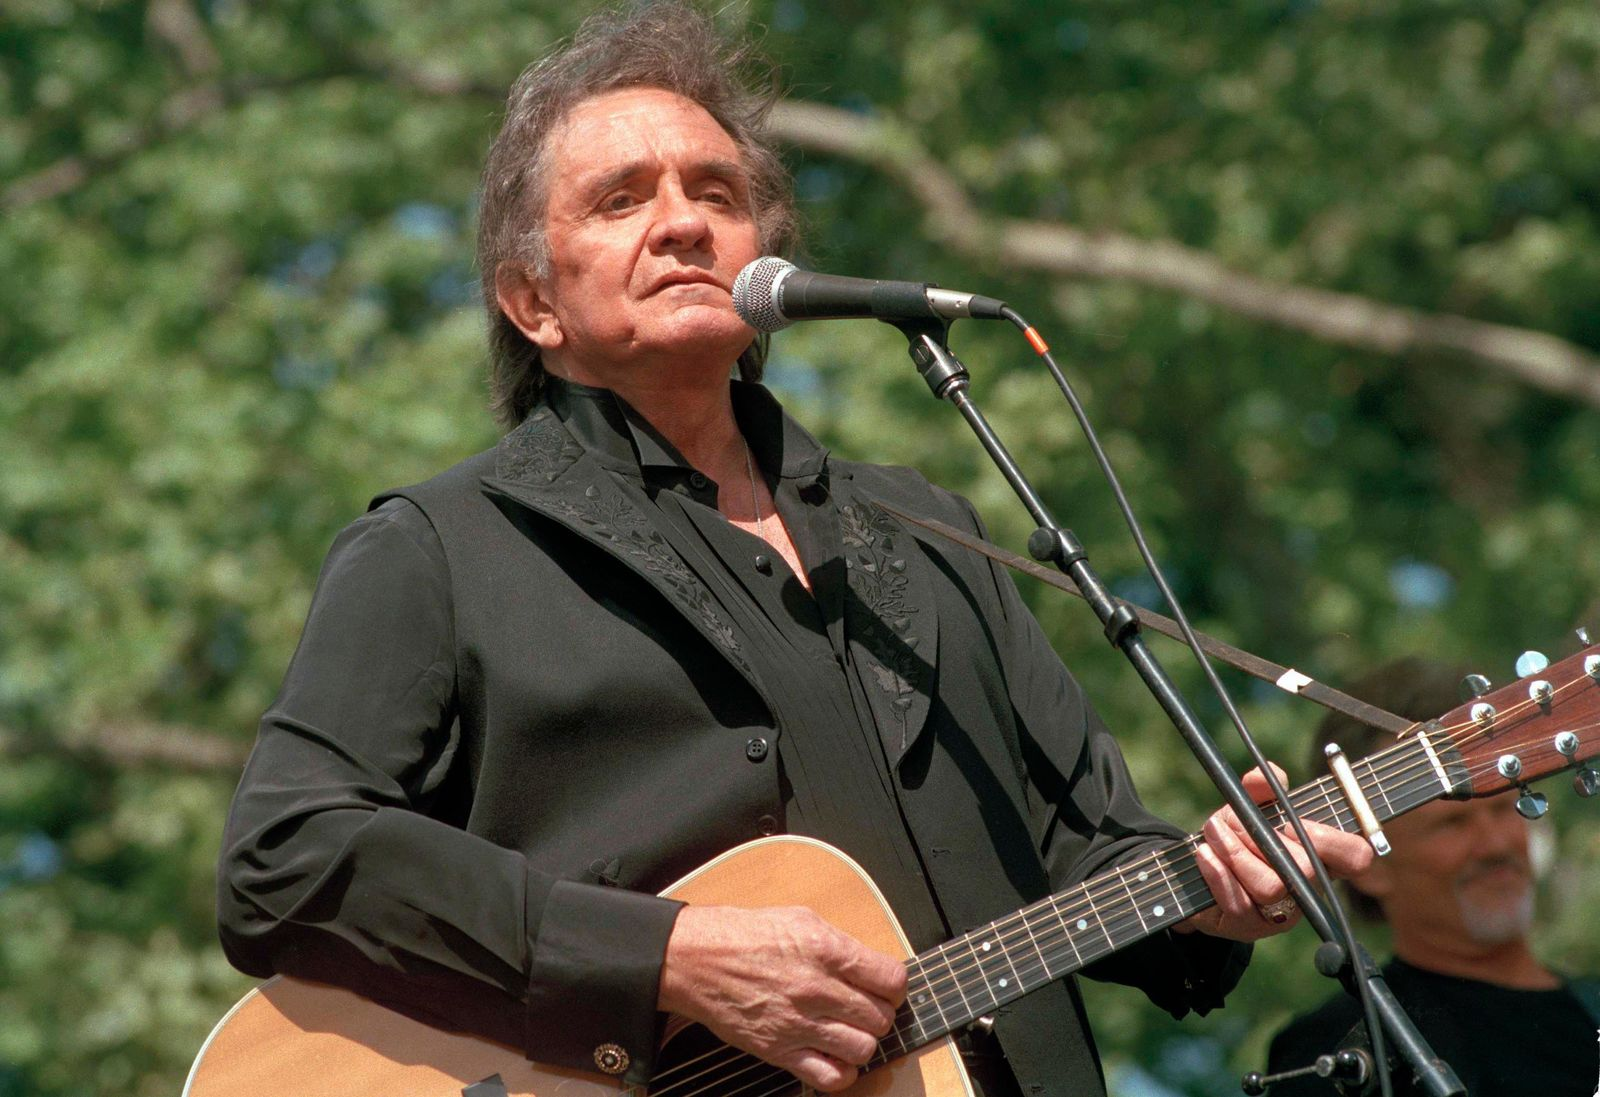 FILE - In this May 23, 1993 file photo, country legend Johnny Cash performs at a benefit concert at Central Park in New York. (AP Photo/Joe Tabacca, File)